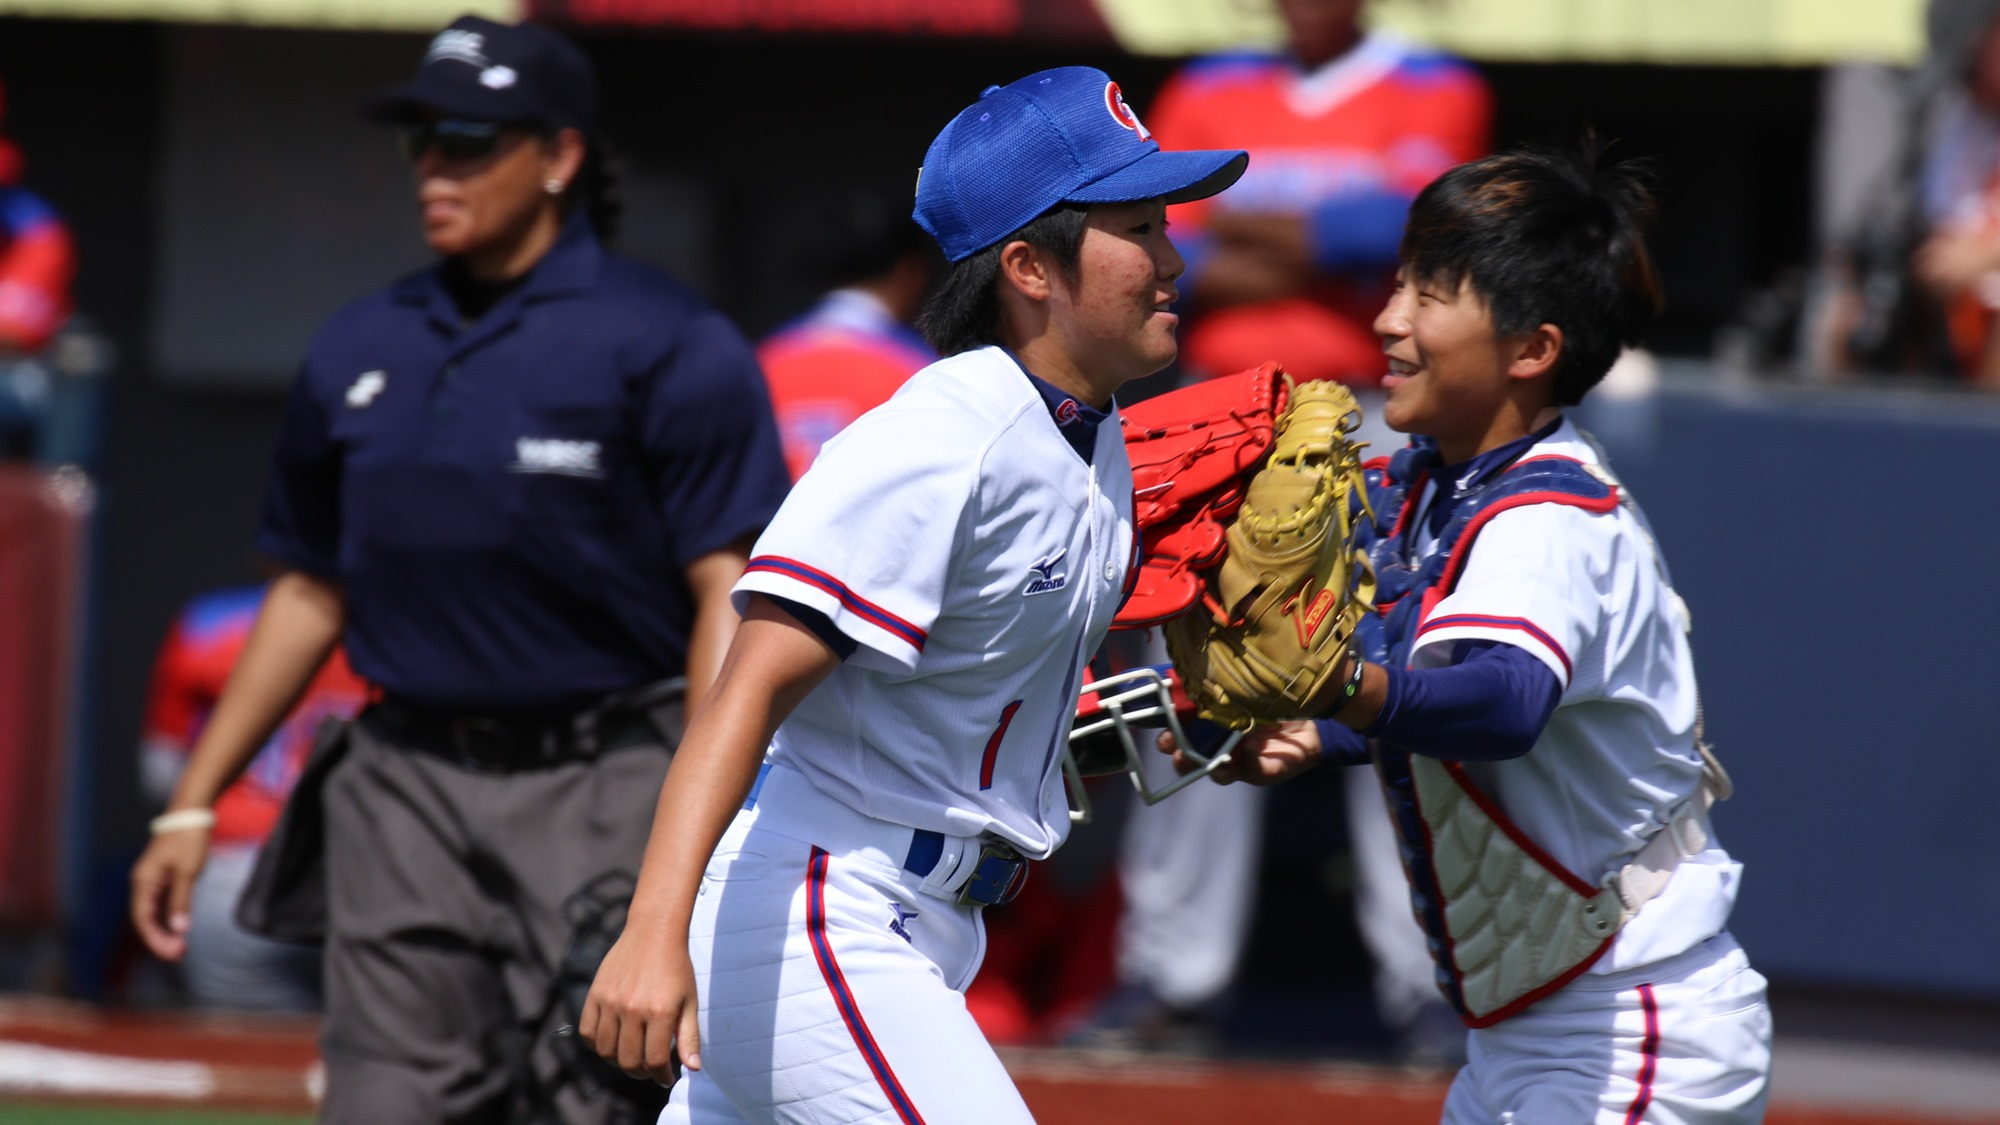 Hsieh Yu Ying congratulated by catcher Ying Lee Shih after getting out of the eighth without allowing a run